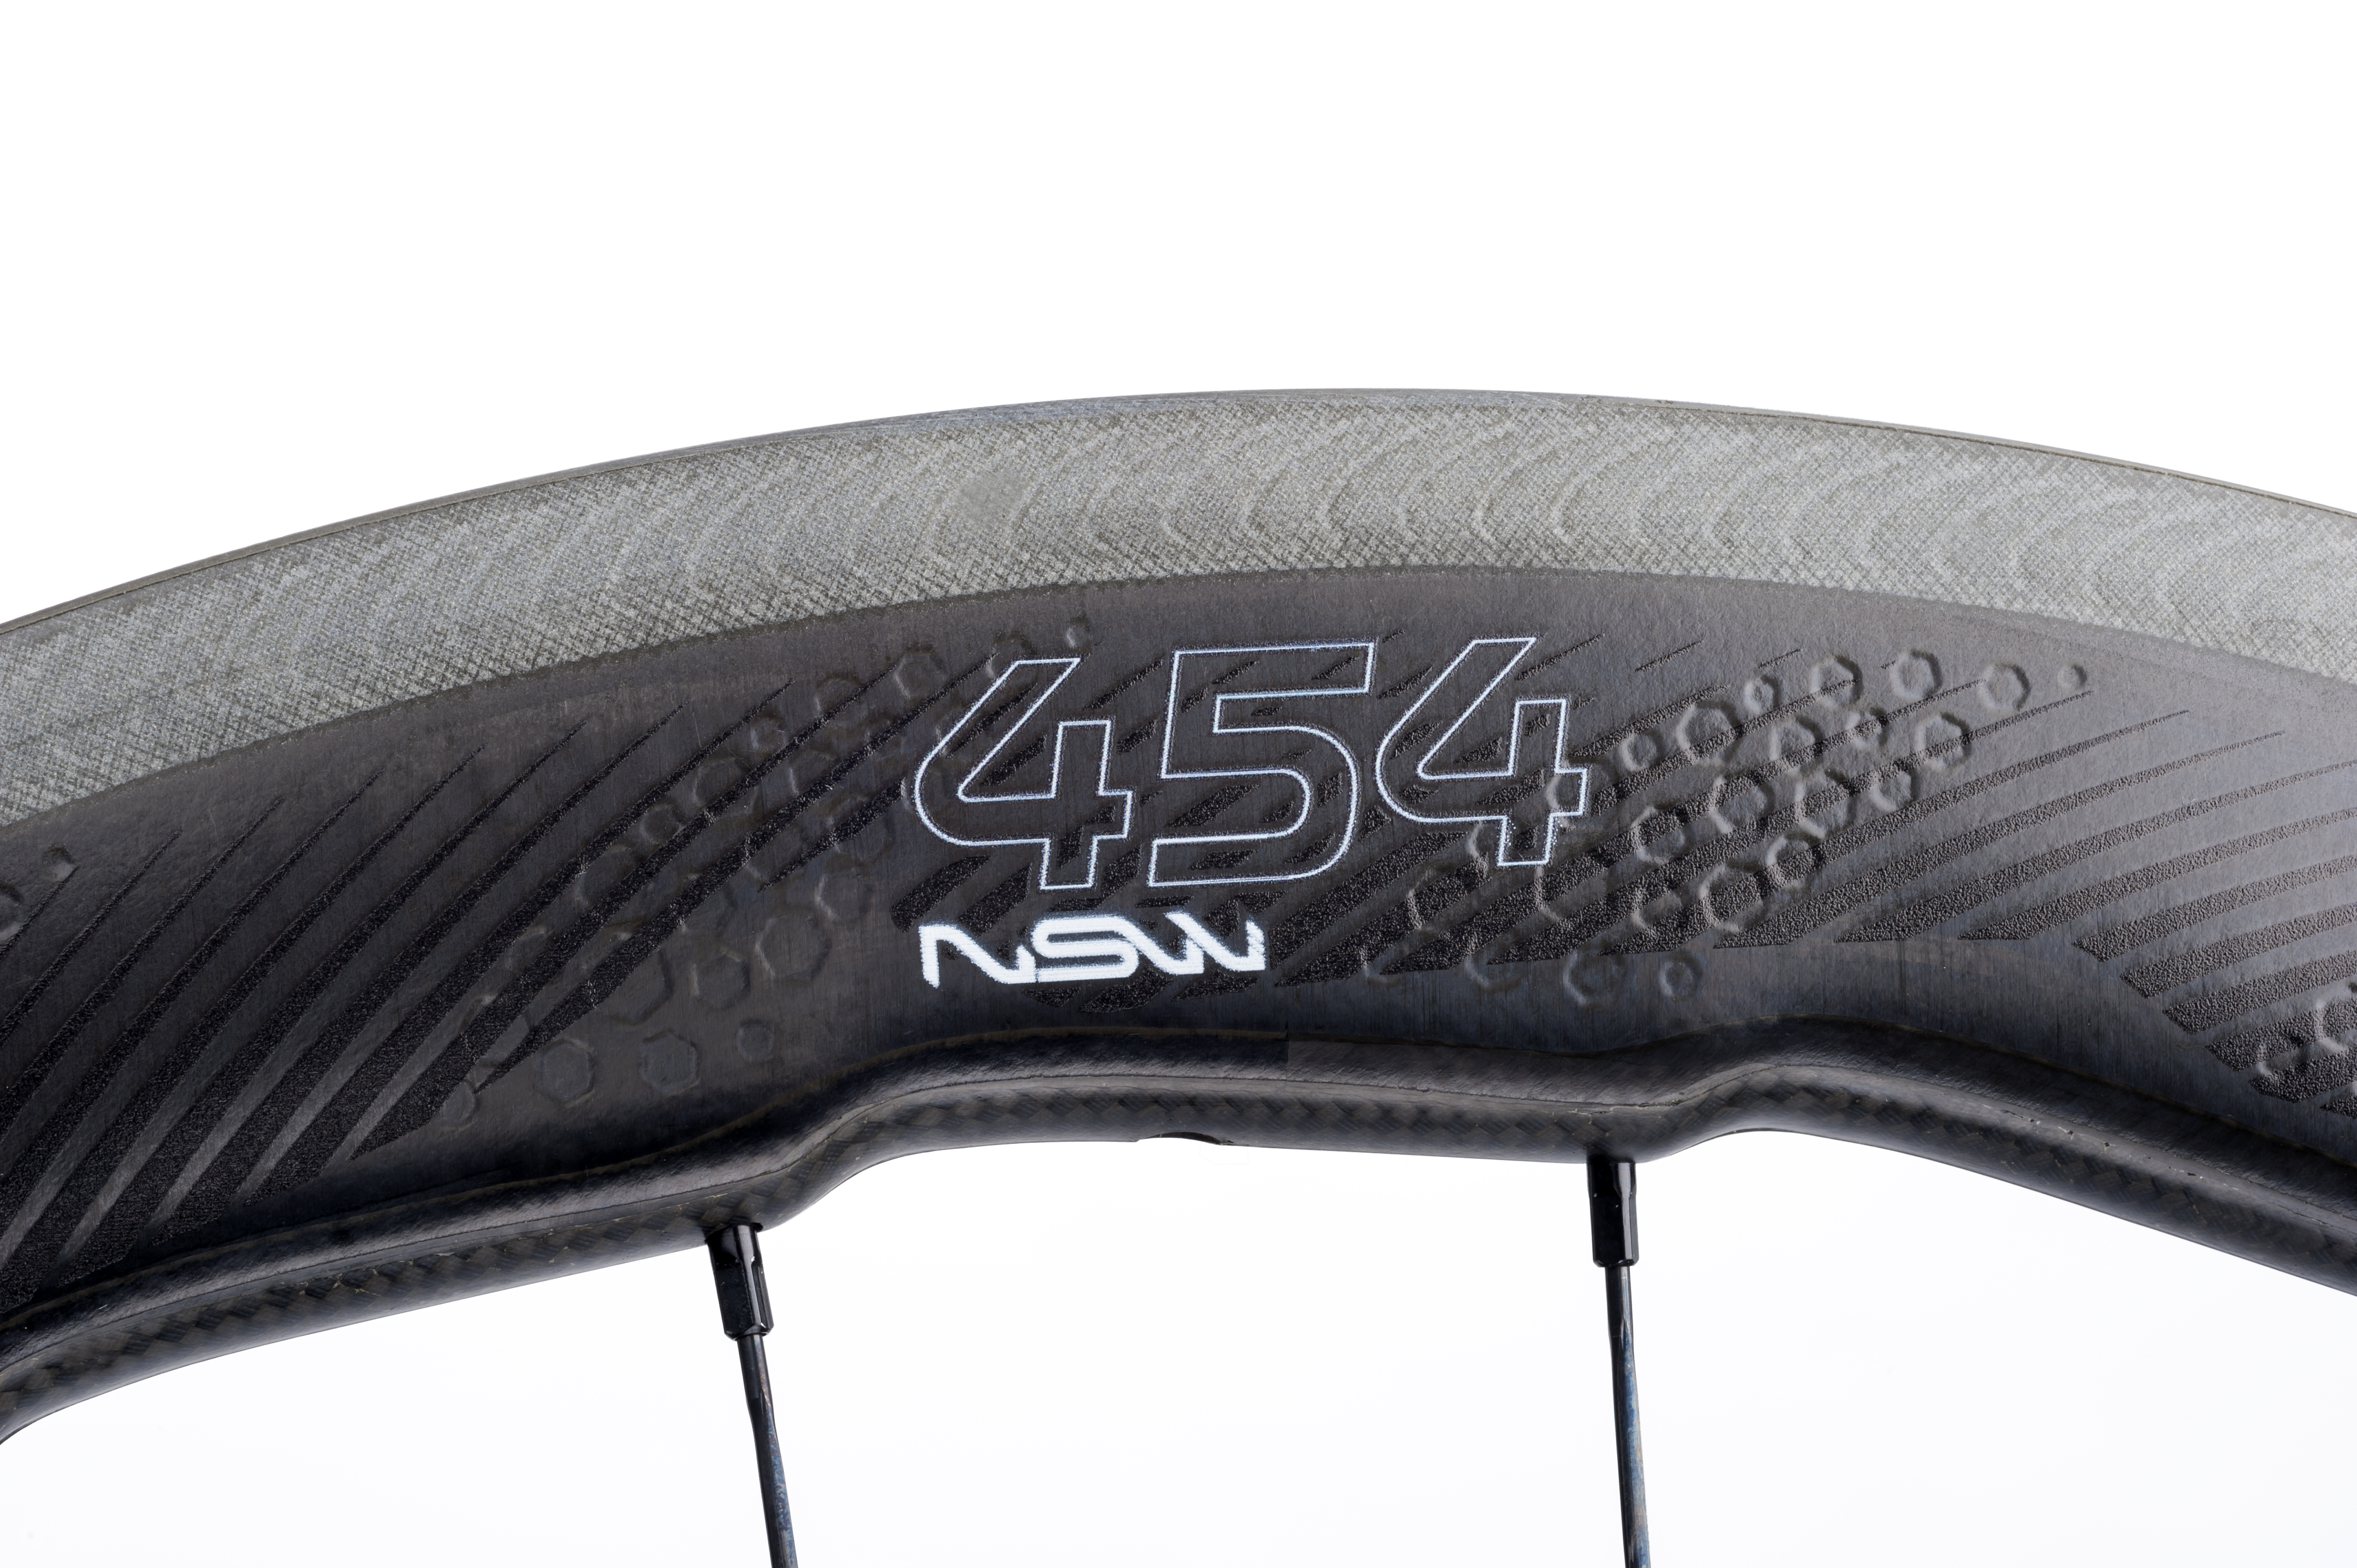 Zipp heeds the call of the wild w/ new Biomimicry inspired 454 NSW ...